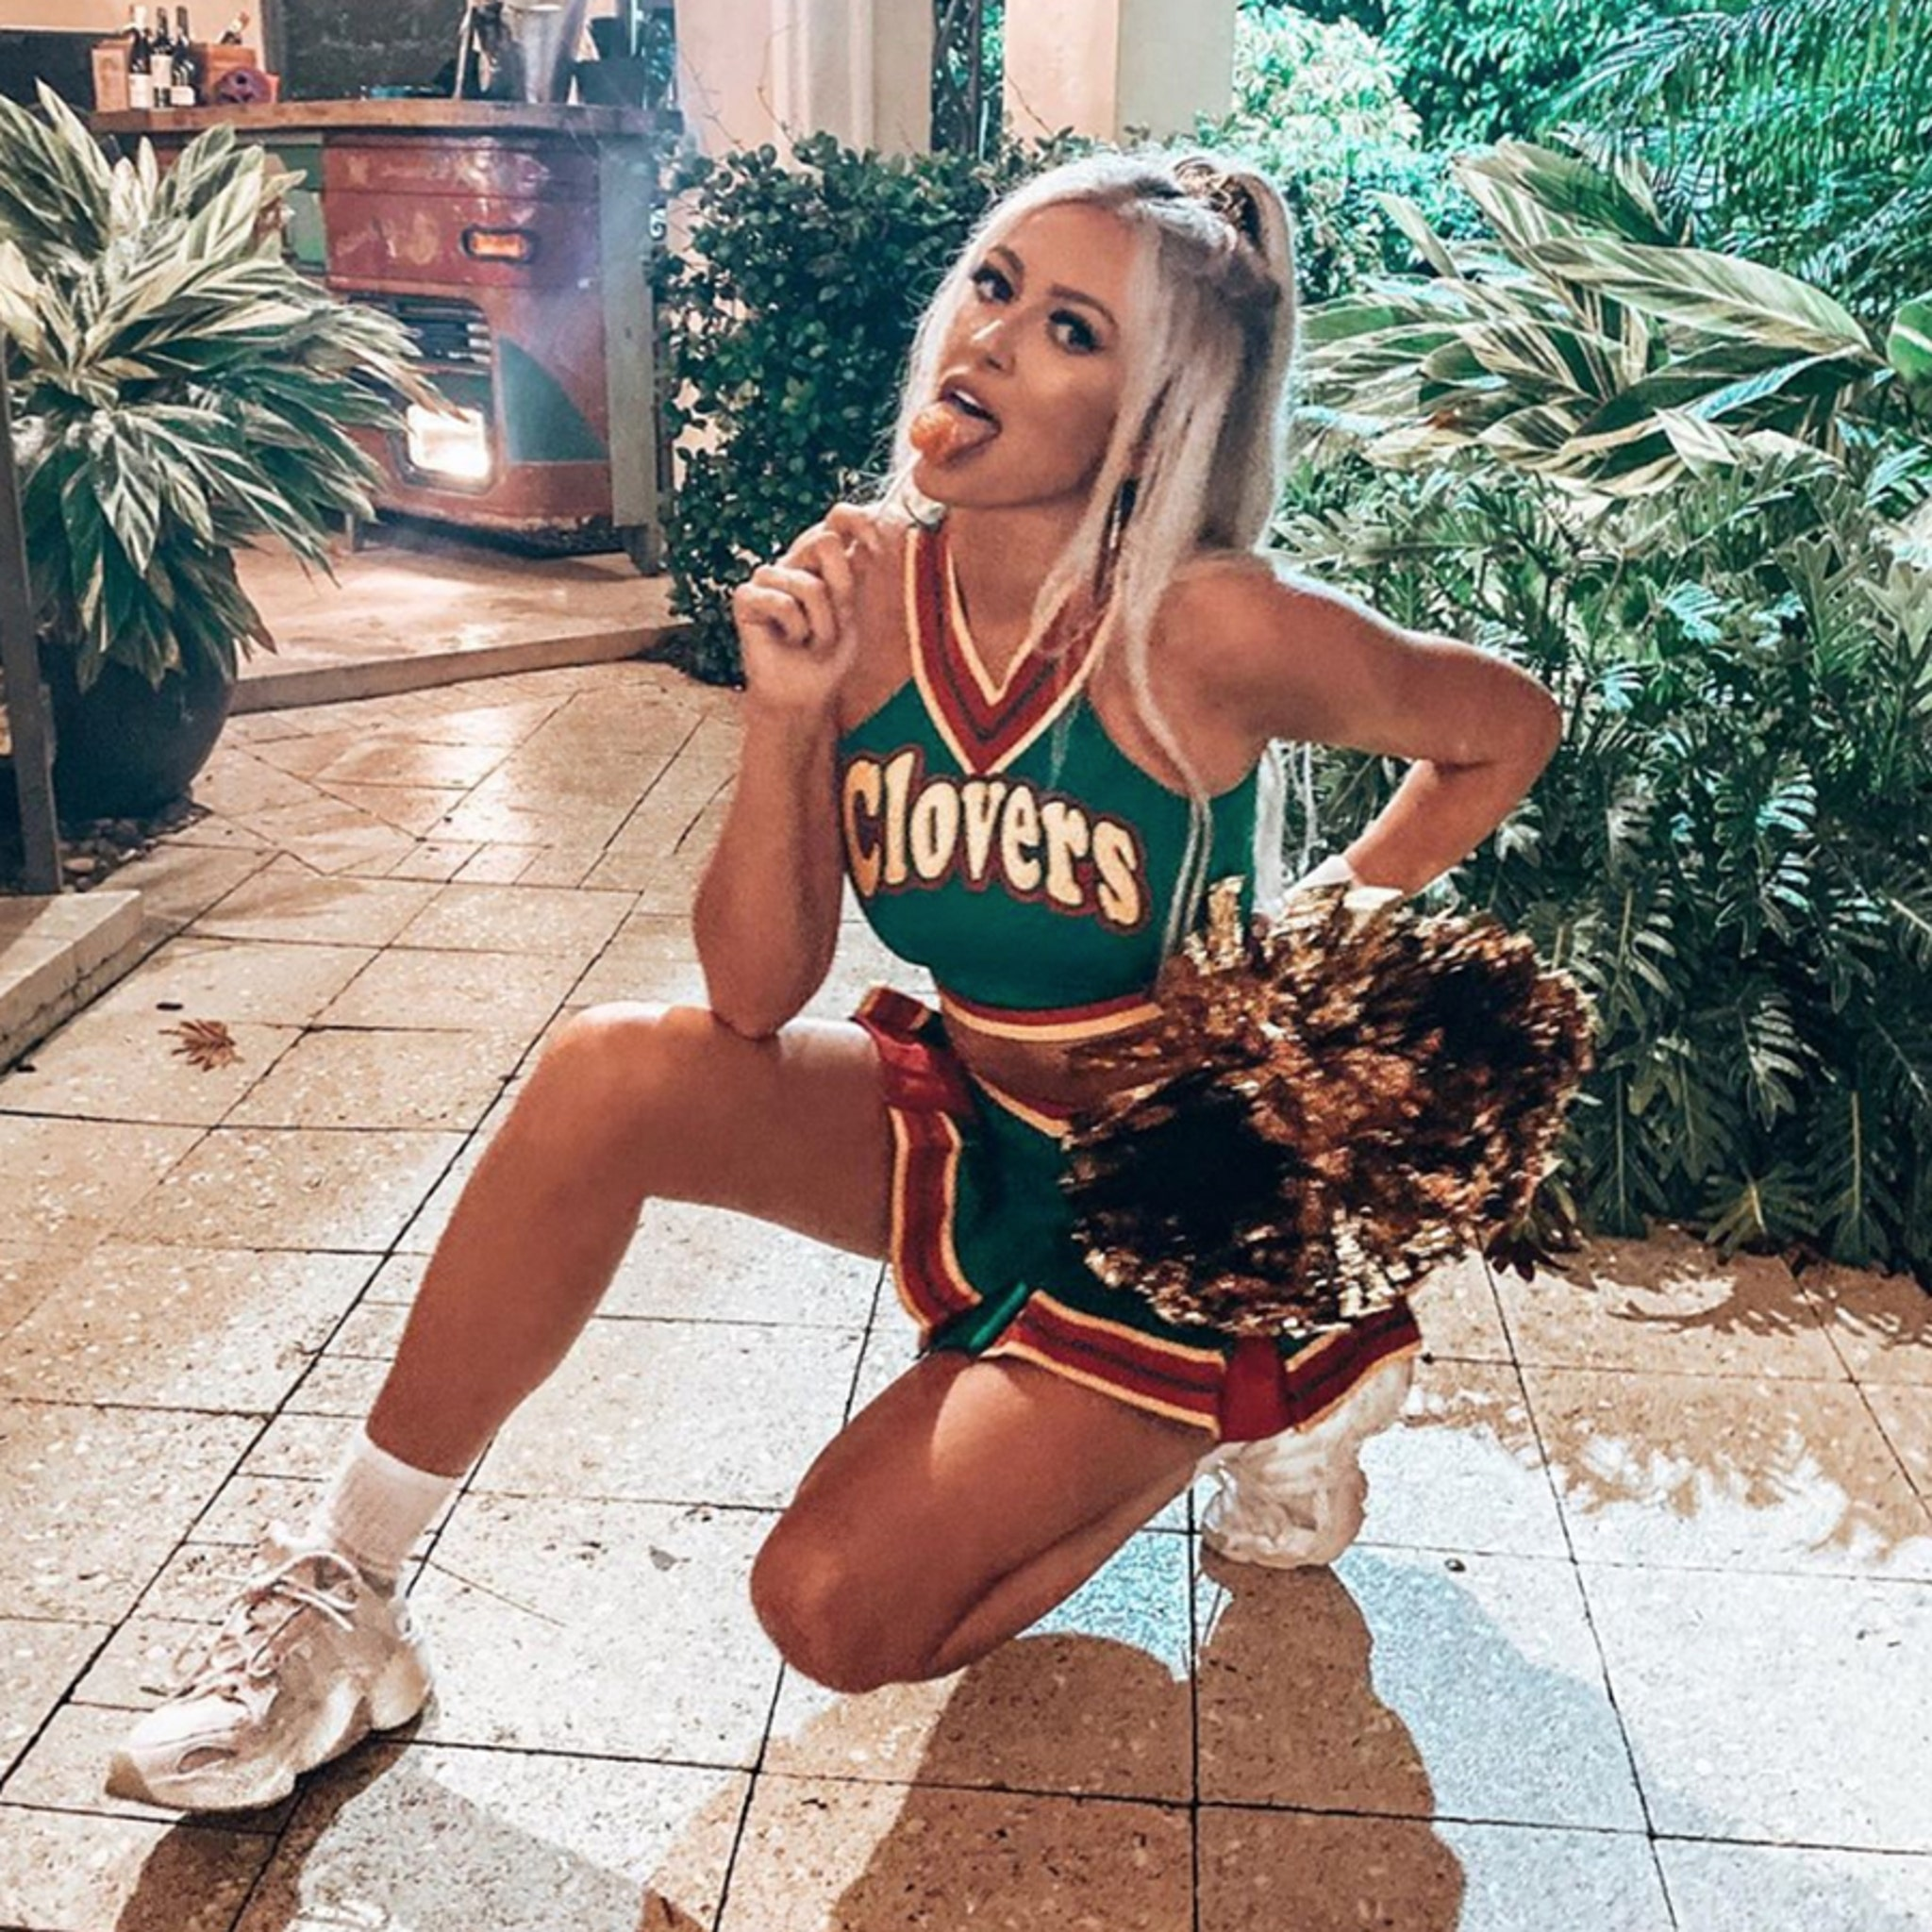 Paulina Gretzky Rocks Tiny Cheerleader Outfit For Halloween, Bring It On!